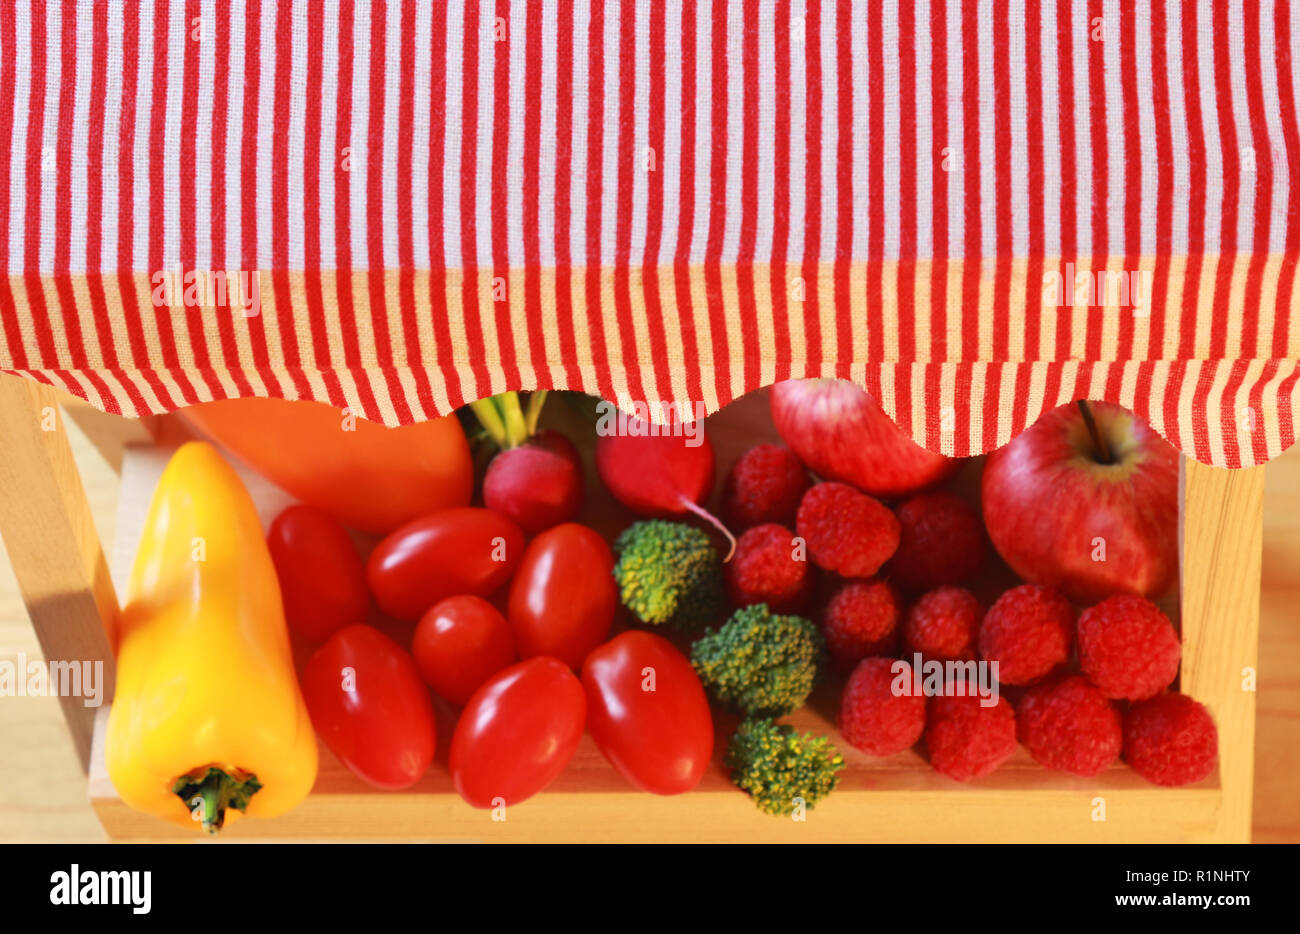 close-up of a miniature market stall with fruits and vegetables, seen from above - Stock Image